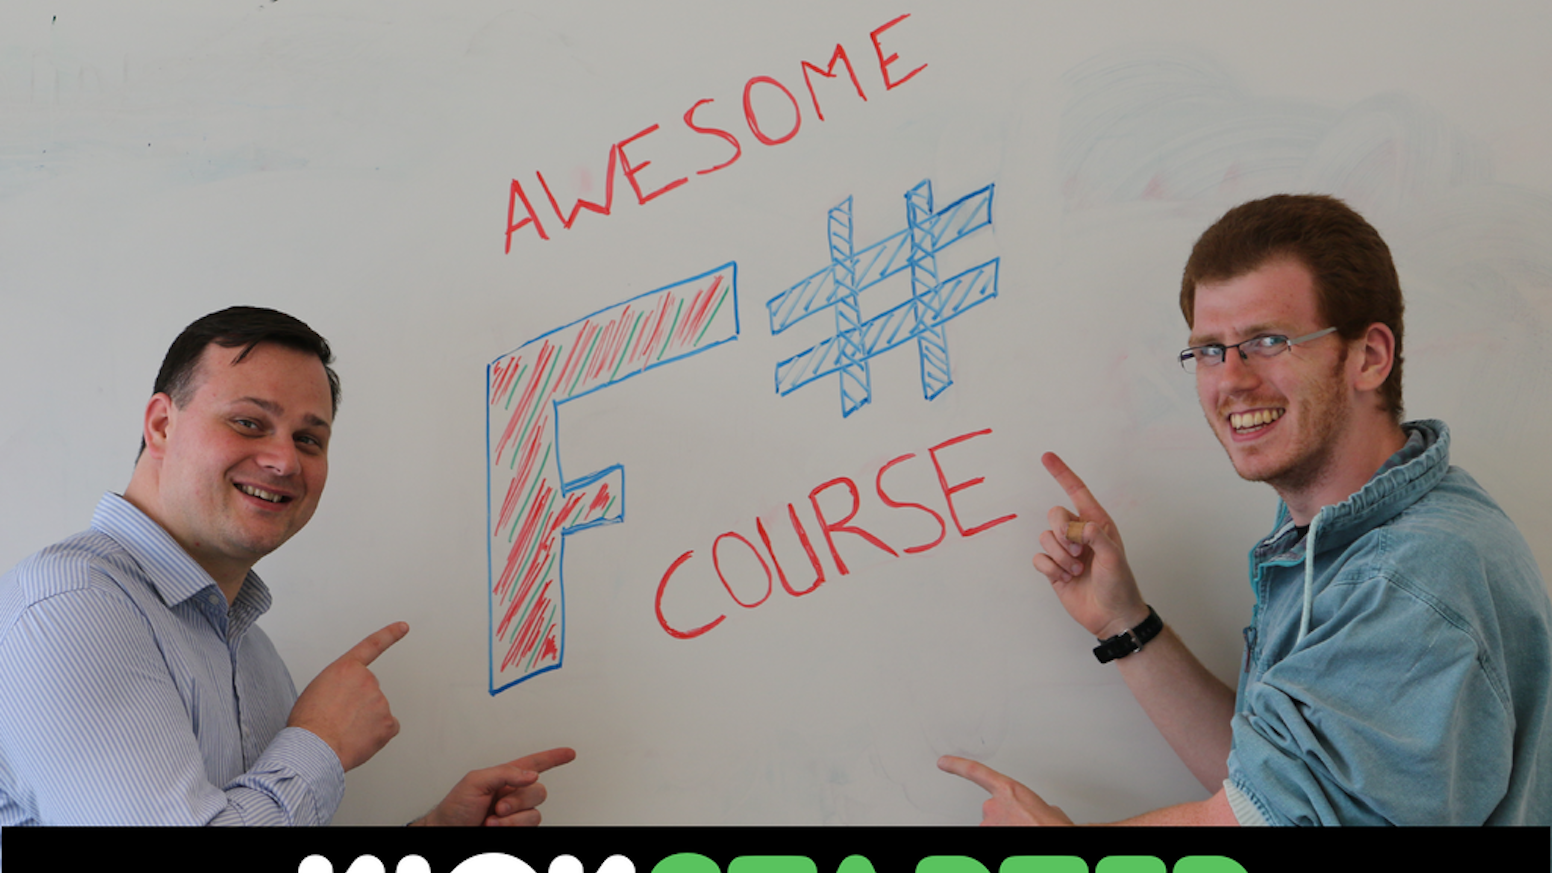 F# made even more awesome! No prior knowledge needed to dive into F# today. Projects cover Web, Azure, Machine Learning and more :) Missed the Kickstarter?